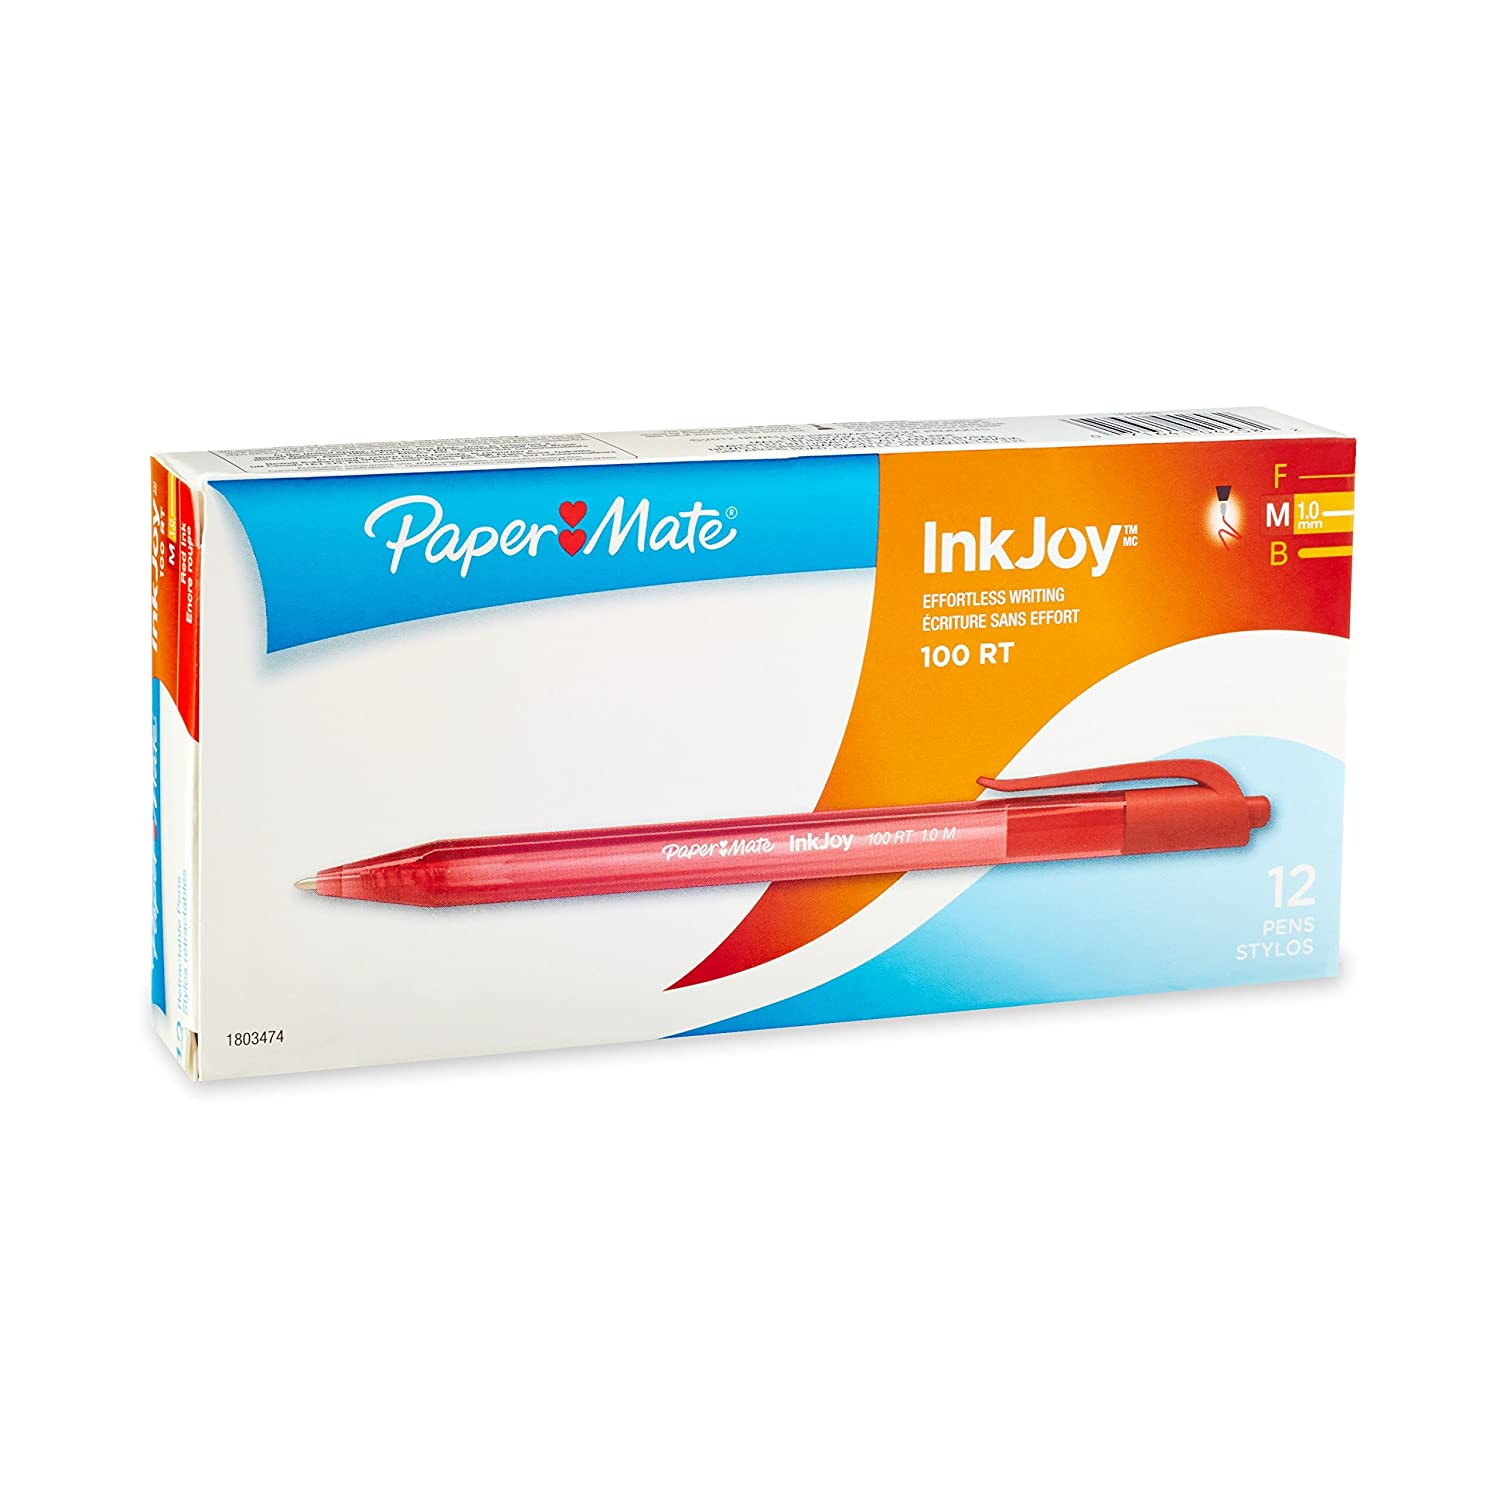 Paper Mate InkJoy 100 RT Retractable Medium Point Advanced Ink Pens, 8 Fashion Coloured Ink Pens (1818459) Sanford Office Supplies